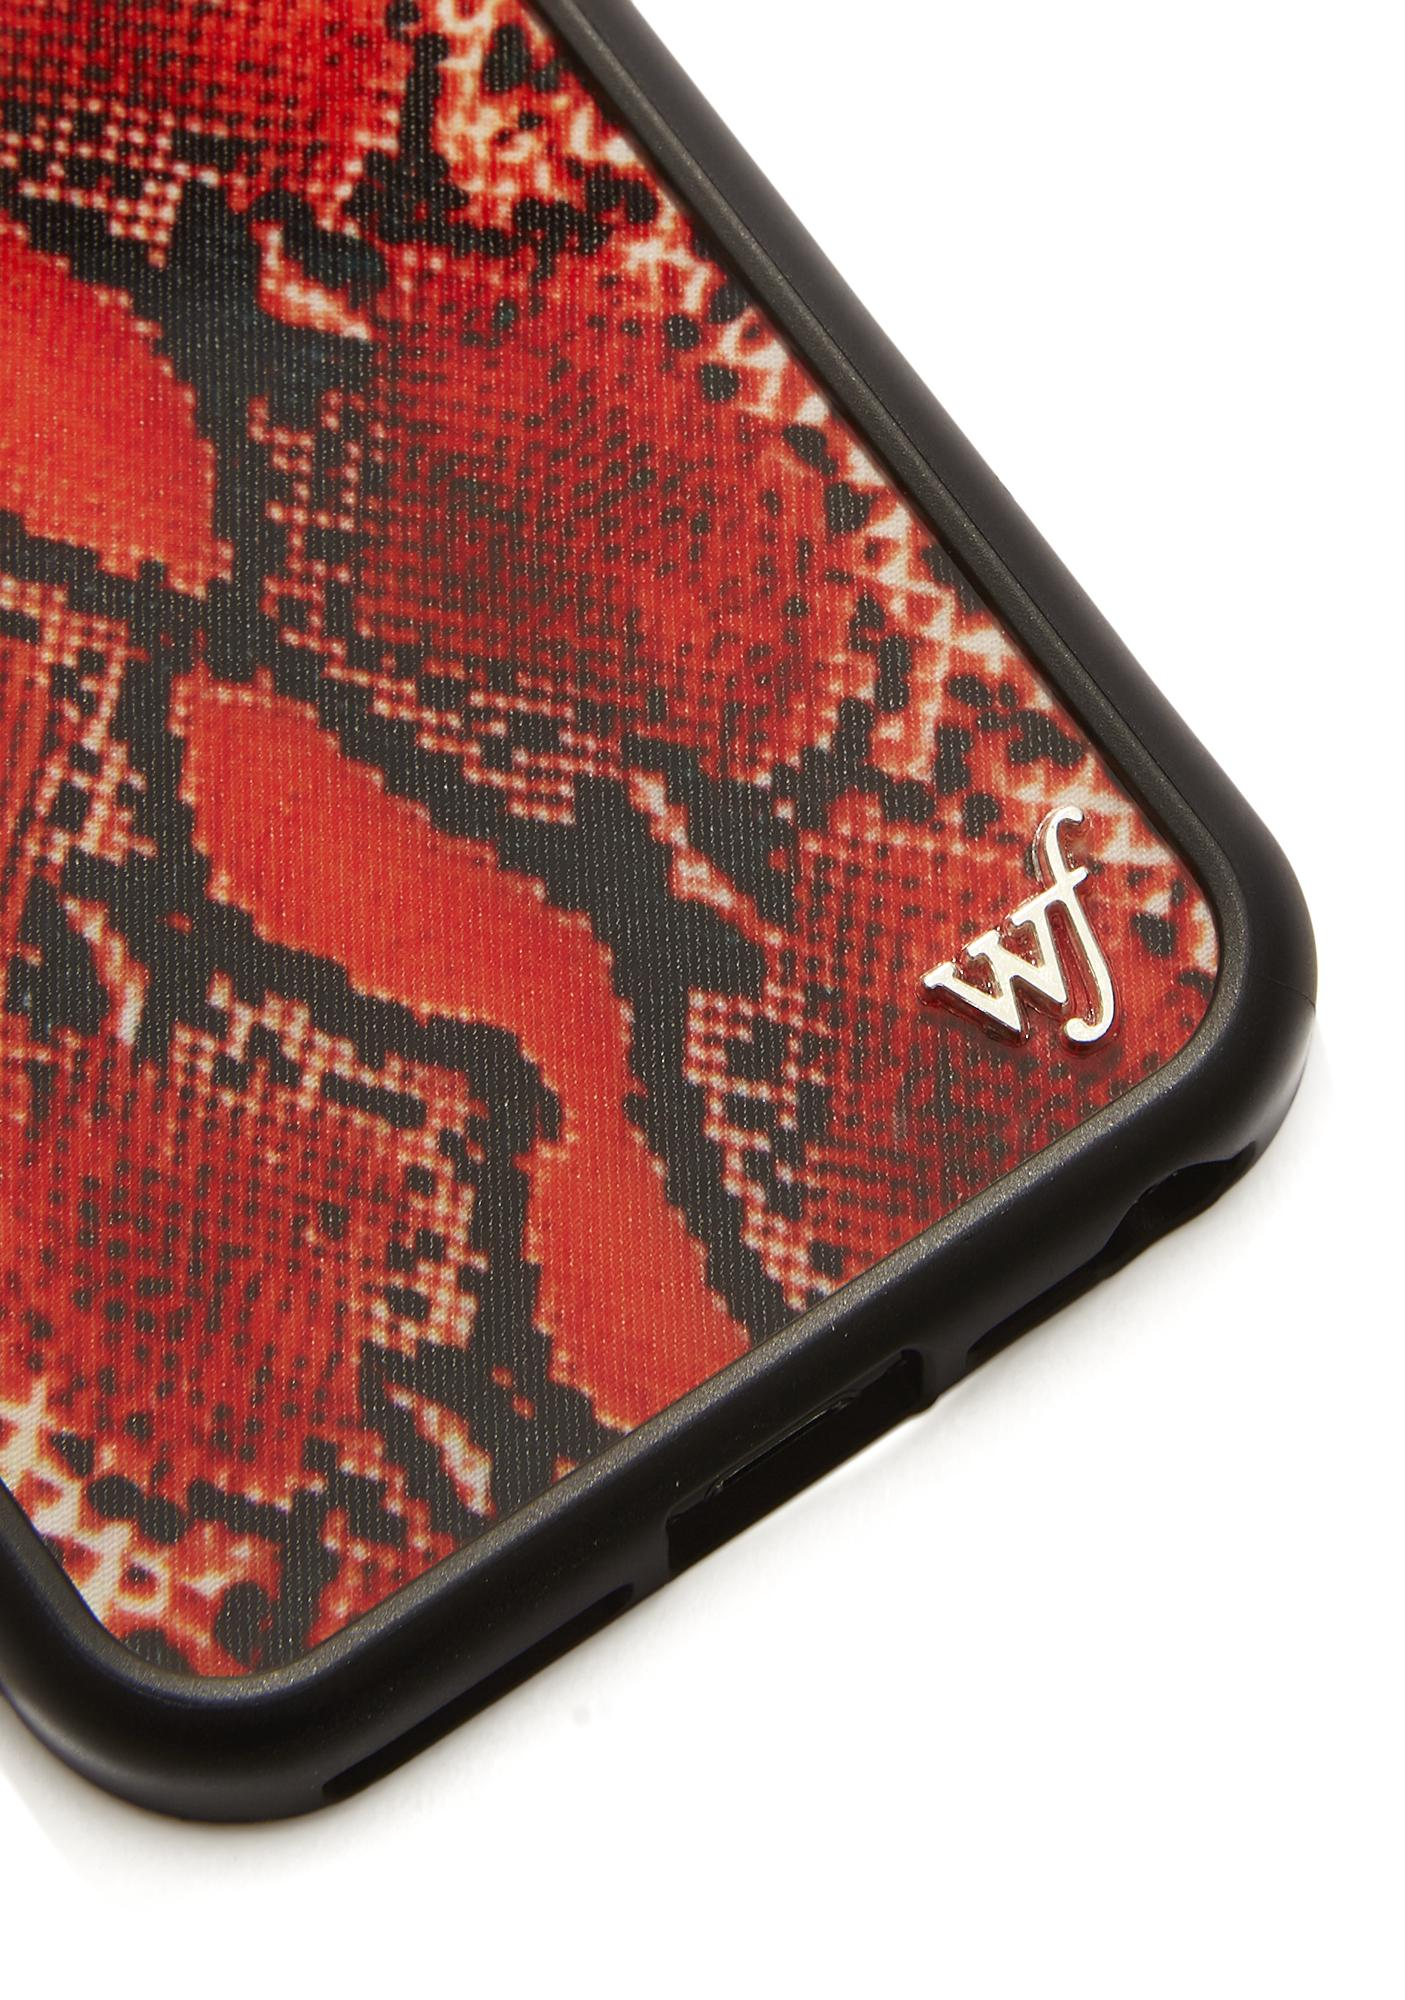 Wildflower Red Snake Skin IPhone Case